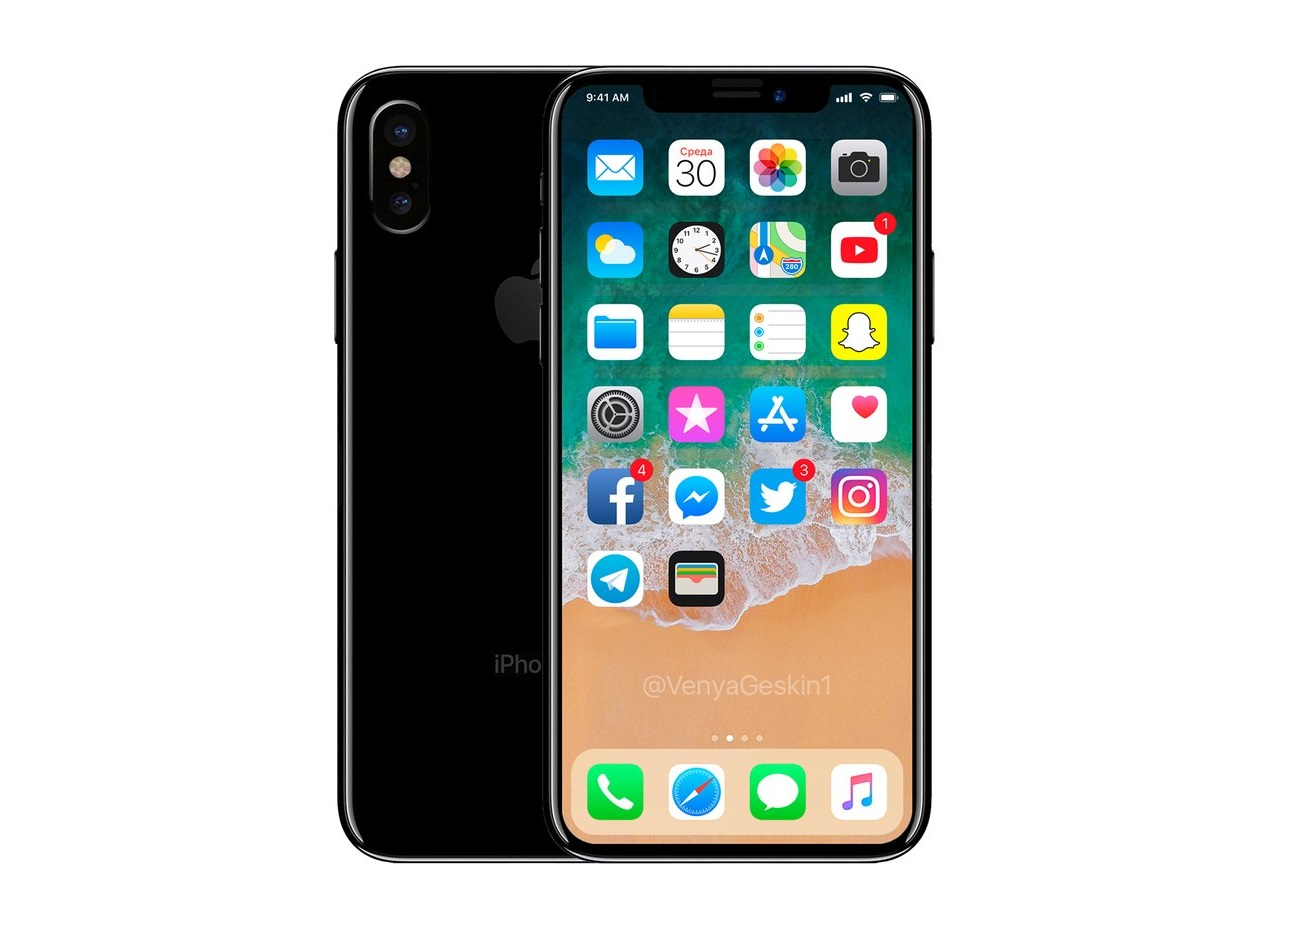 apple iphone 9 in 2018 zwei randlose oled modelle als. Black Bedroom Furniture Sets. Home Design Ideas